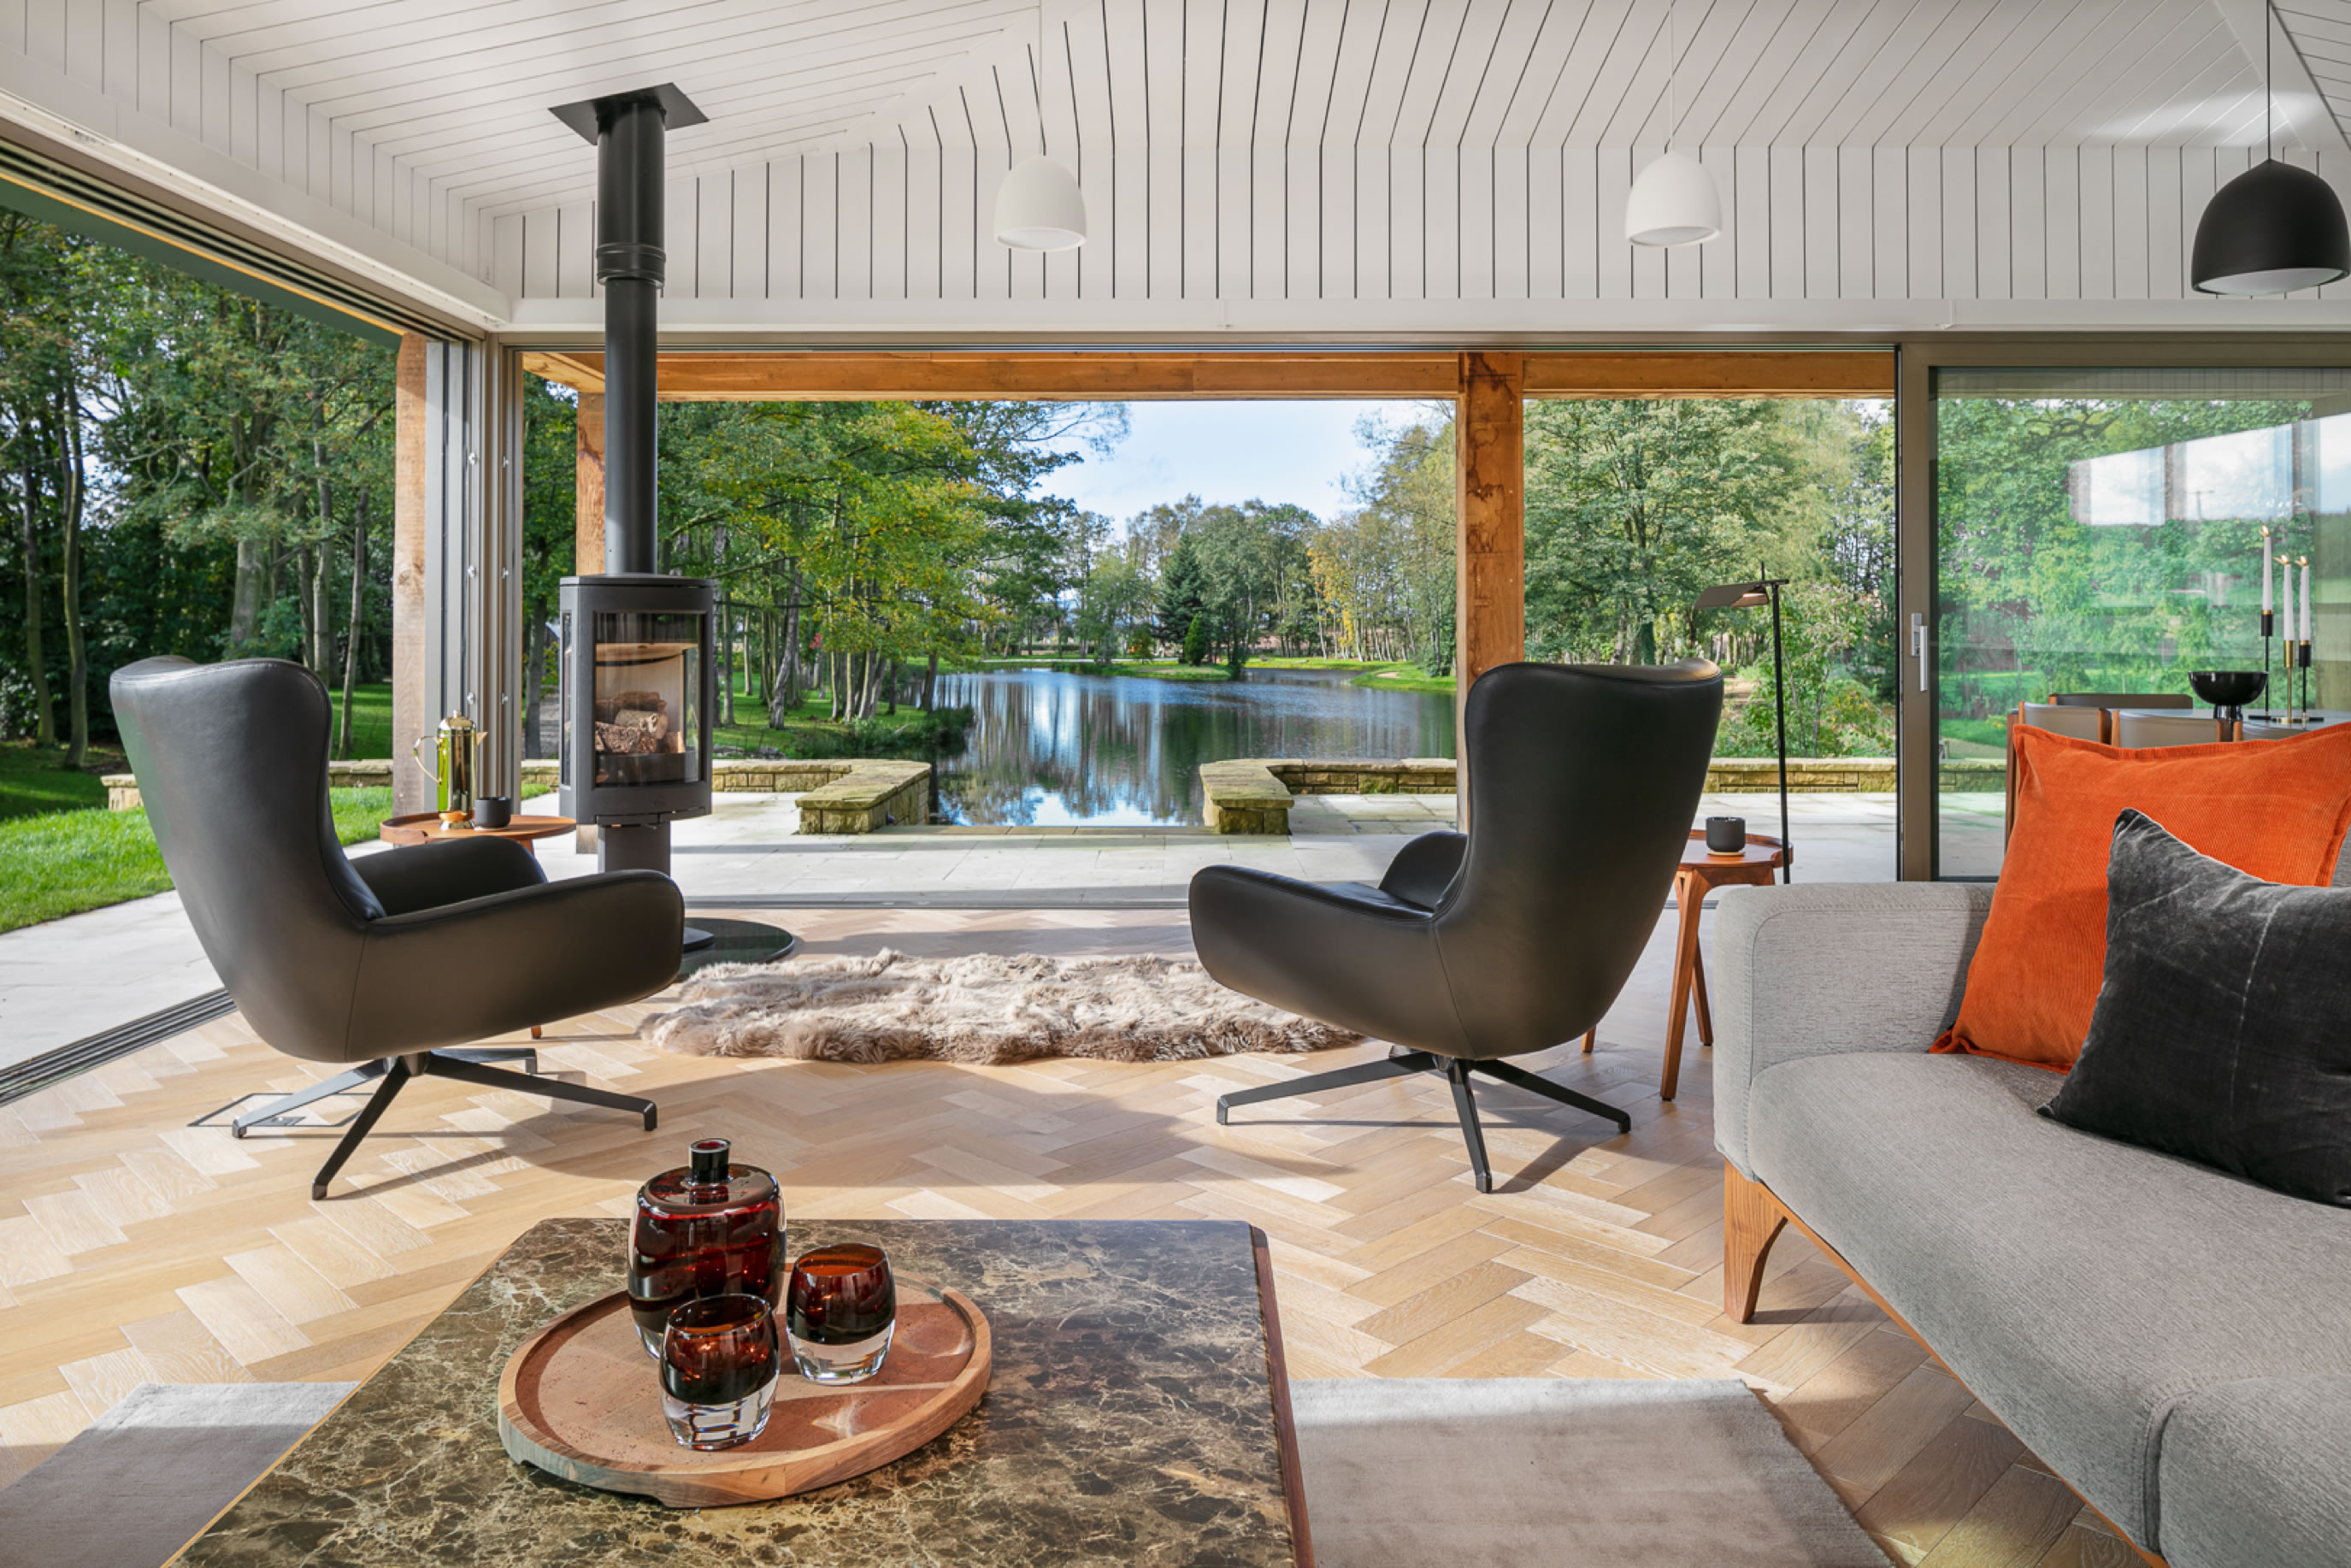 Lakeside Lodge. A project by James Roberts Interior Design Practice